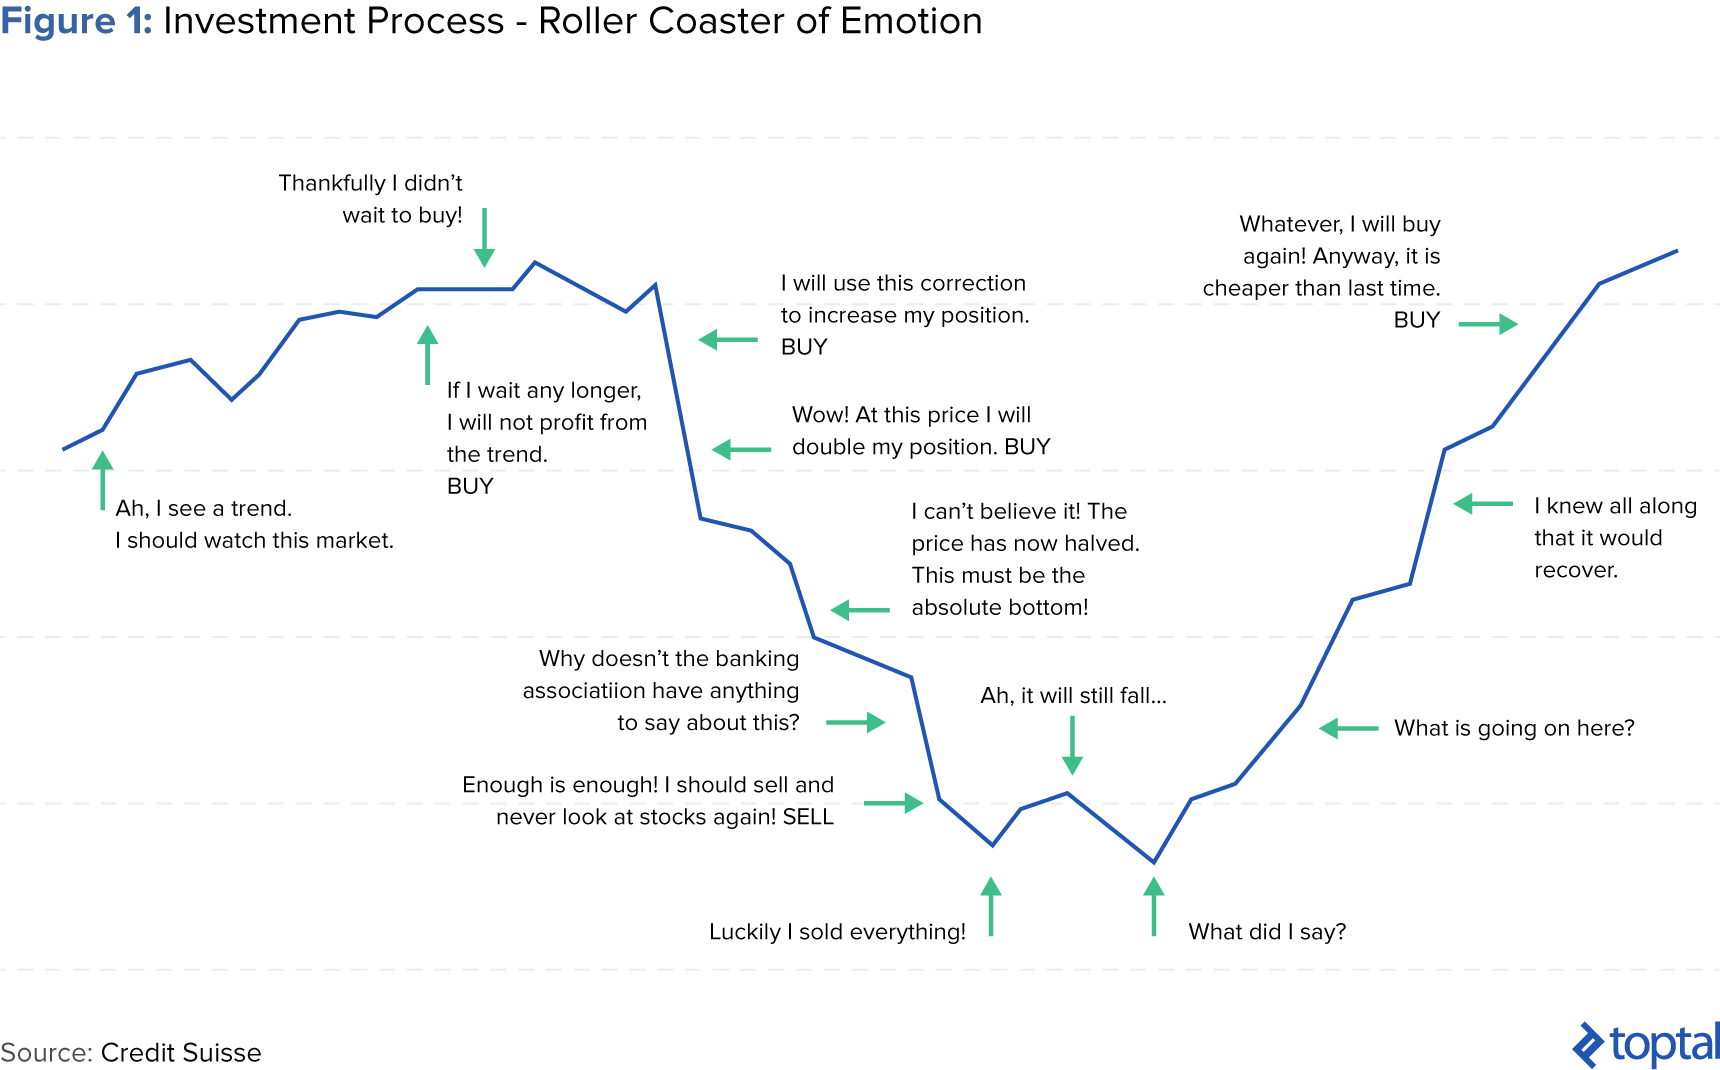 Figure 1: Investment Process - Roller Coaster of Emotion